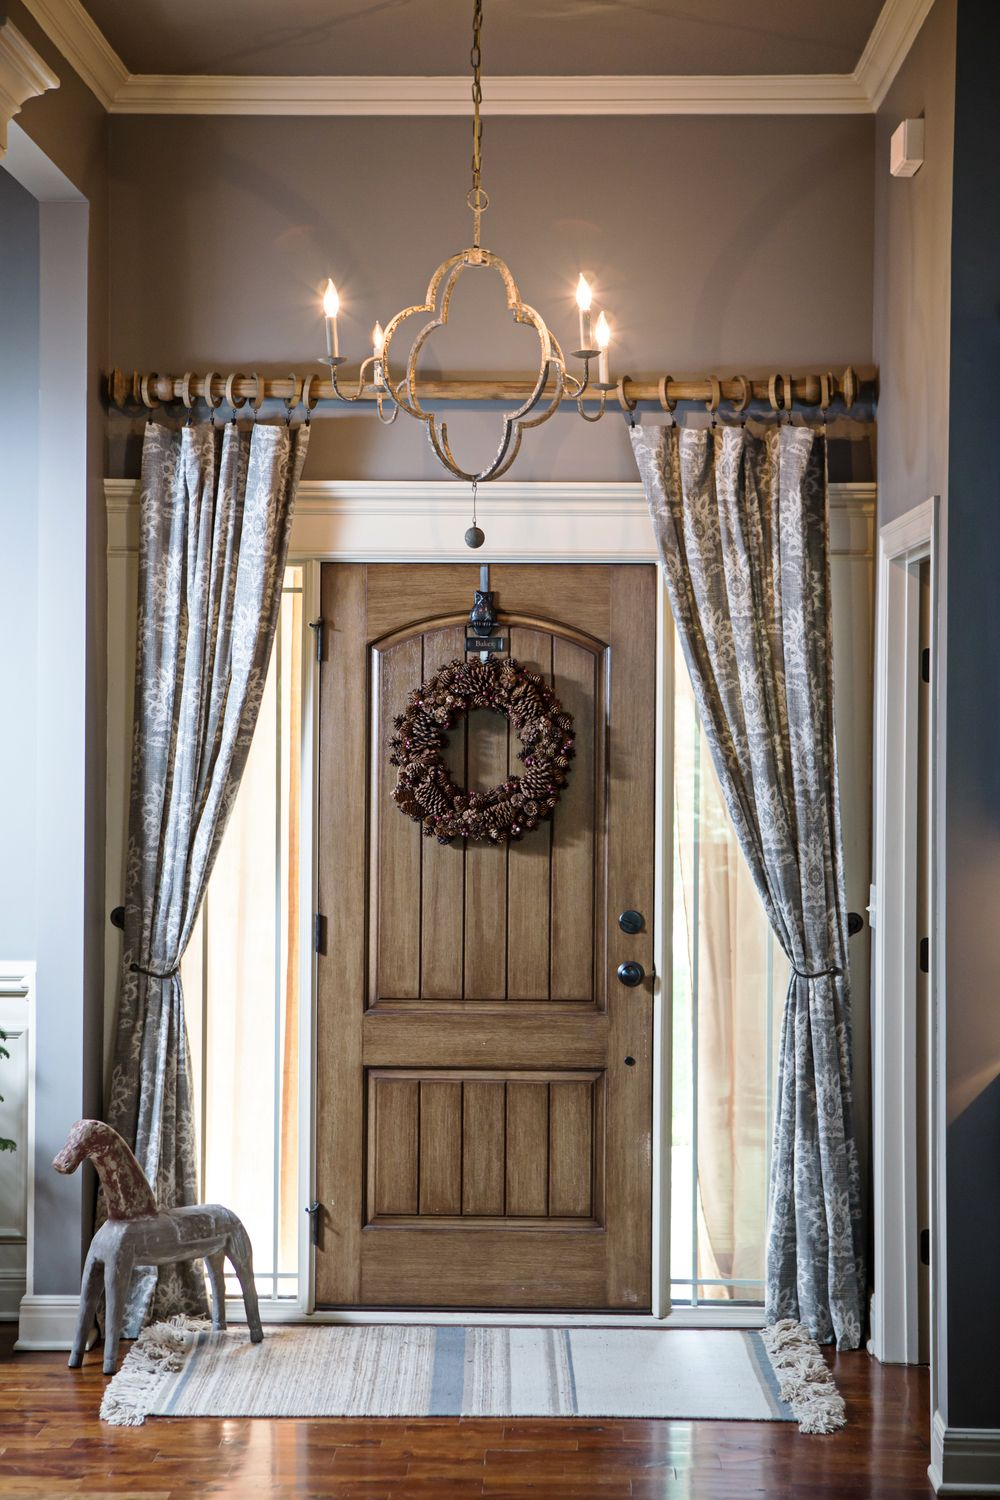 Curtains Over The Front Door Foyer Add Privacy And Style Chandelier By Gabby Rod From Restoration Hardware And Curtains Potte Home Decor Home Interior Design